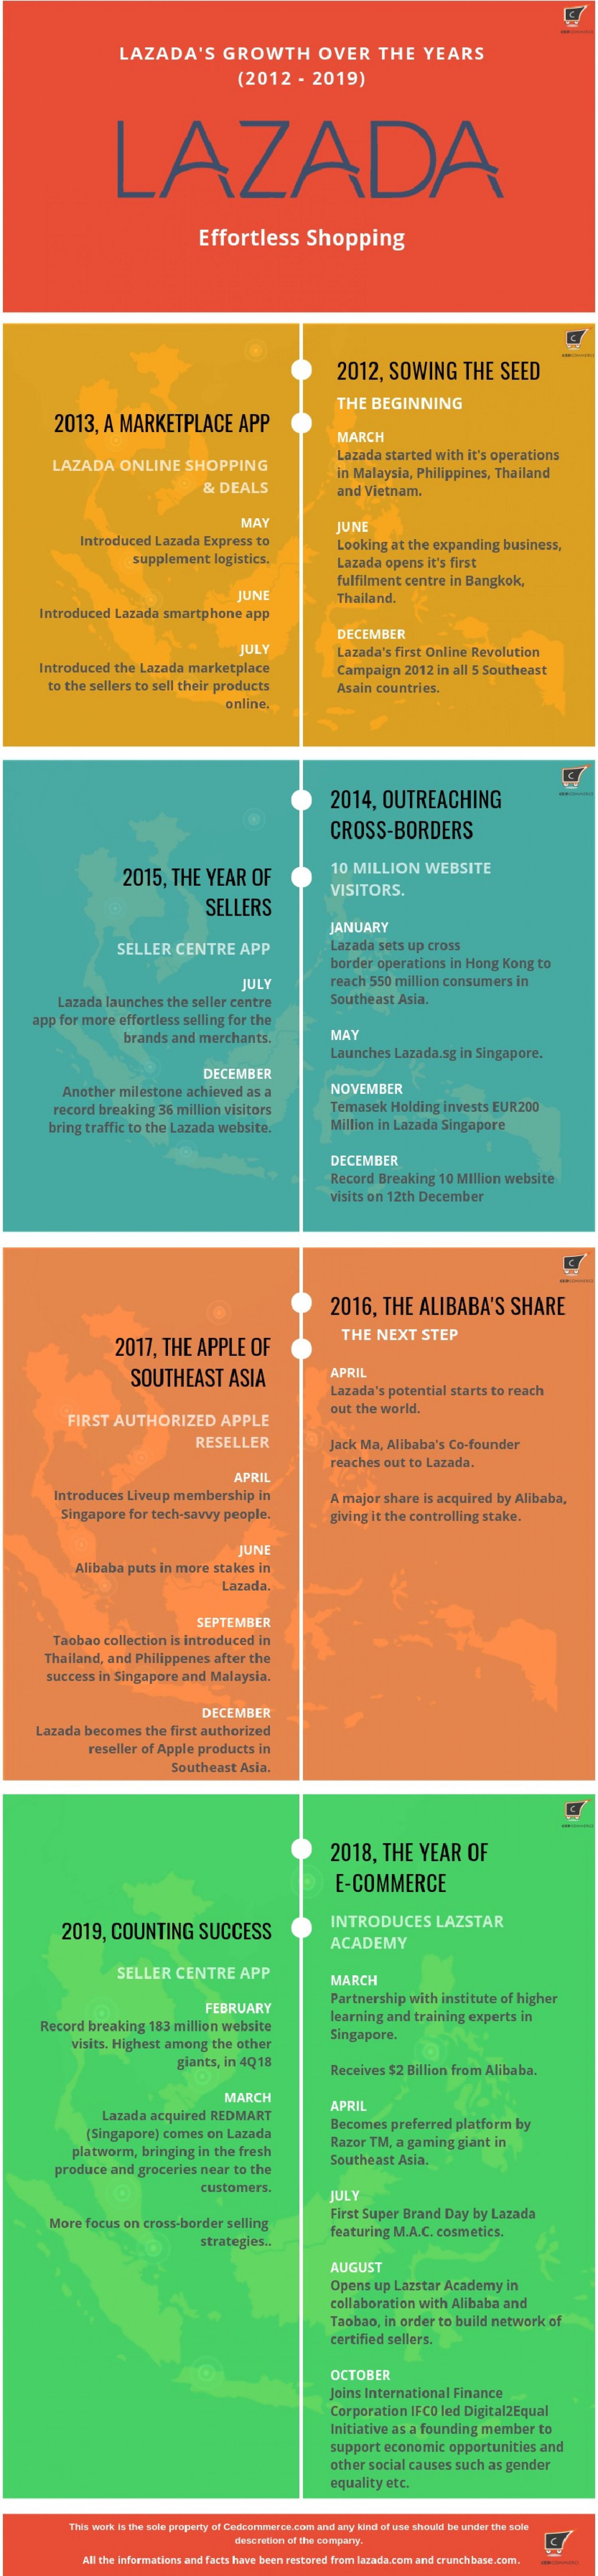 Lazada: An audacity that turned into South East Asia's #1 eCommerce player  Infographic